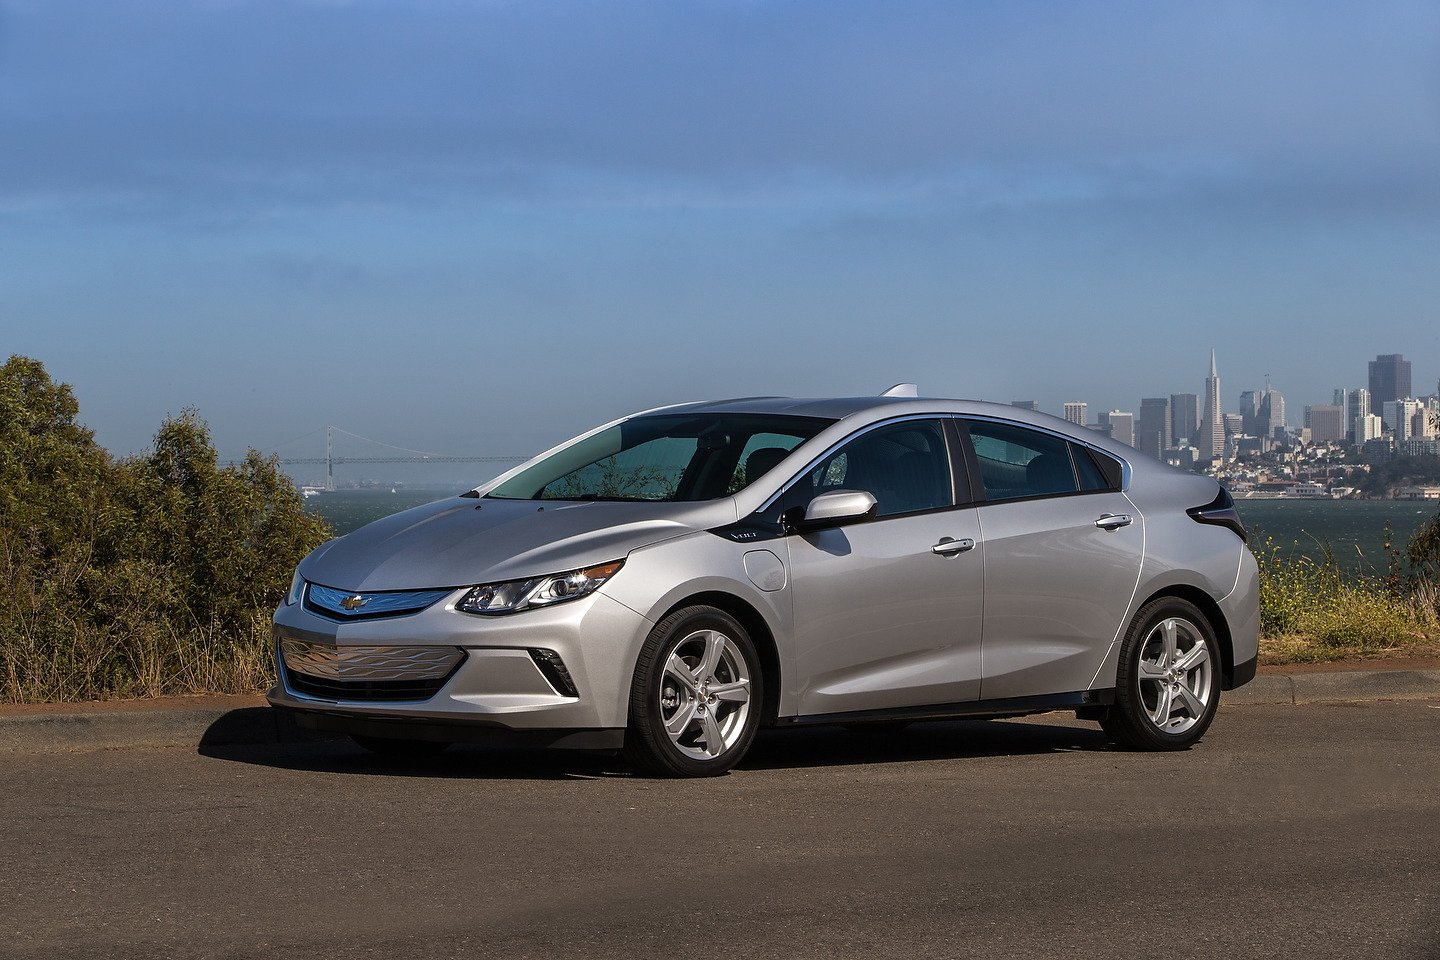 2019 Chevrolet Volt IZEV program